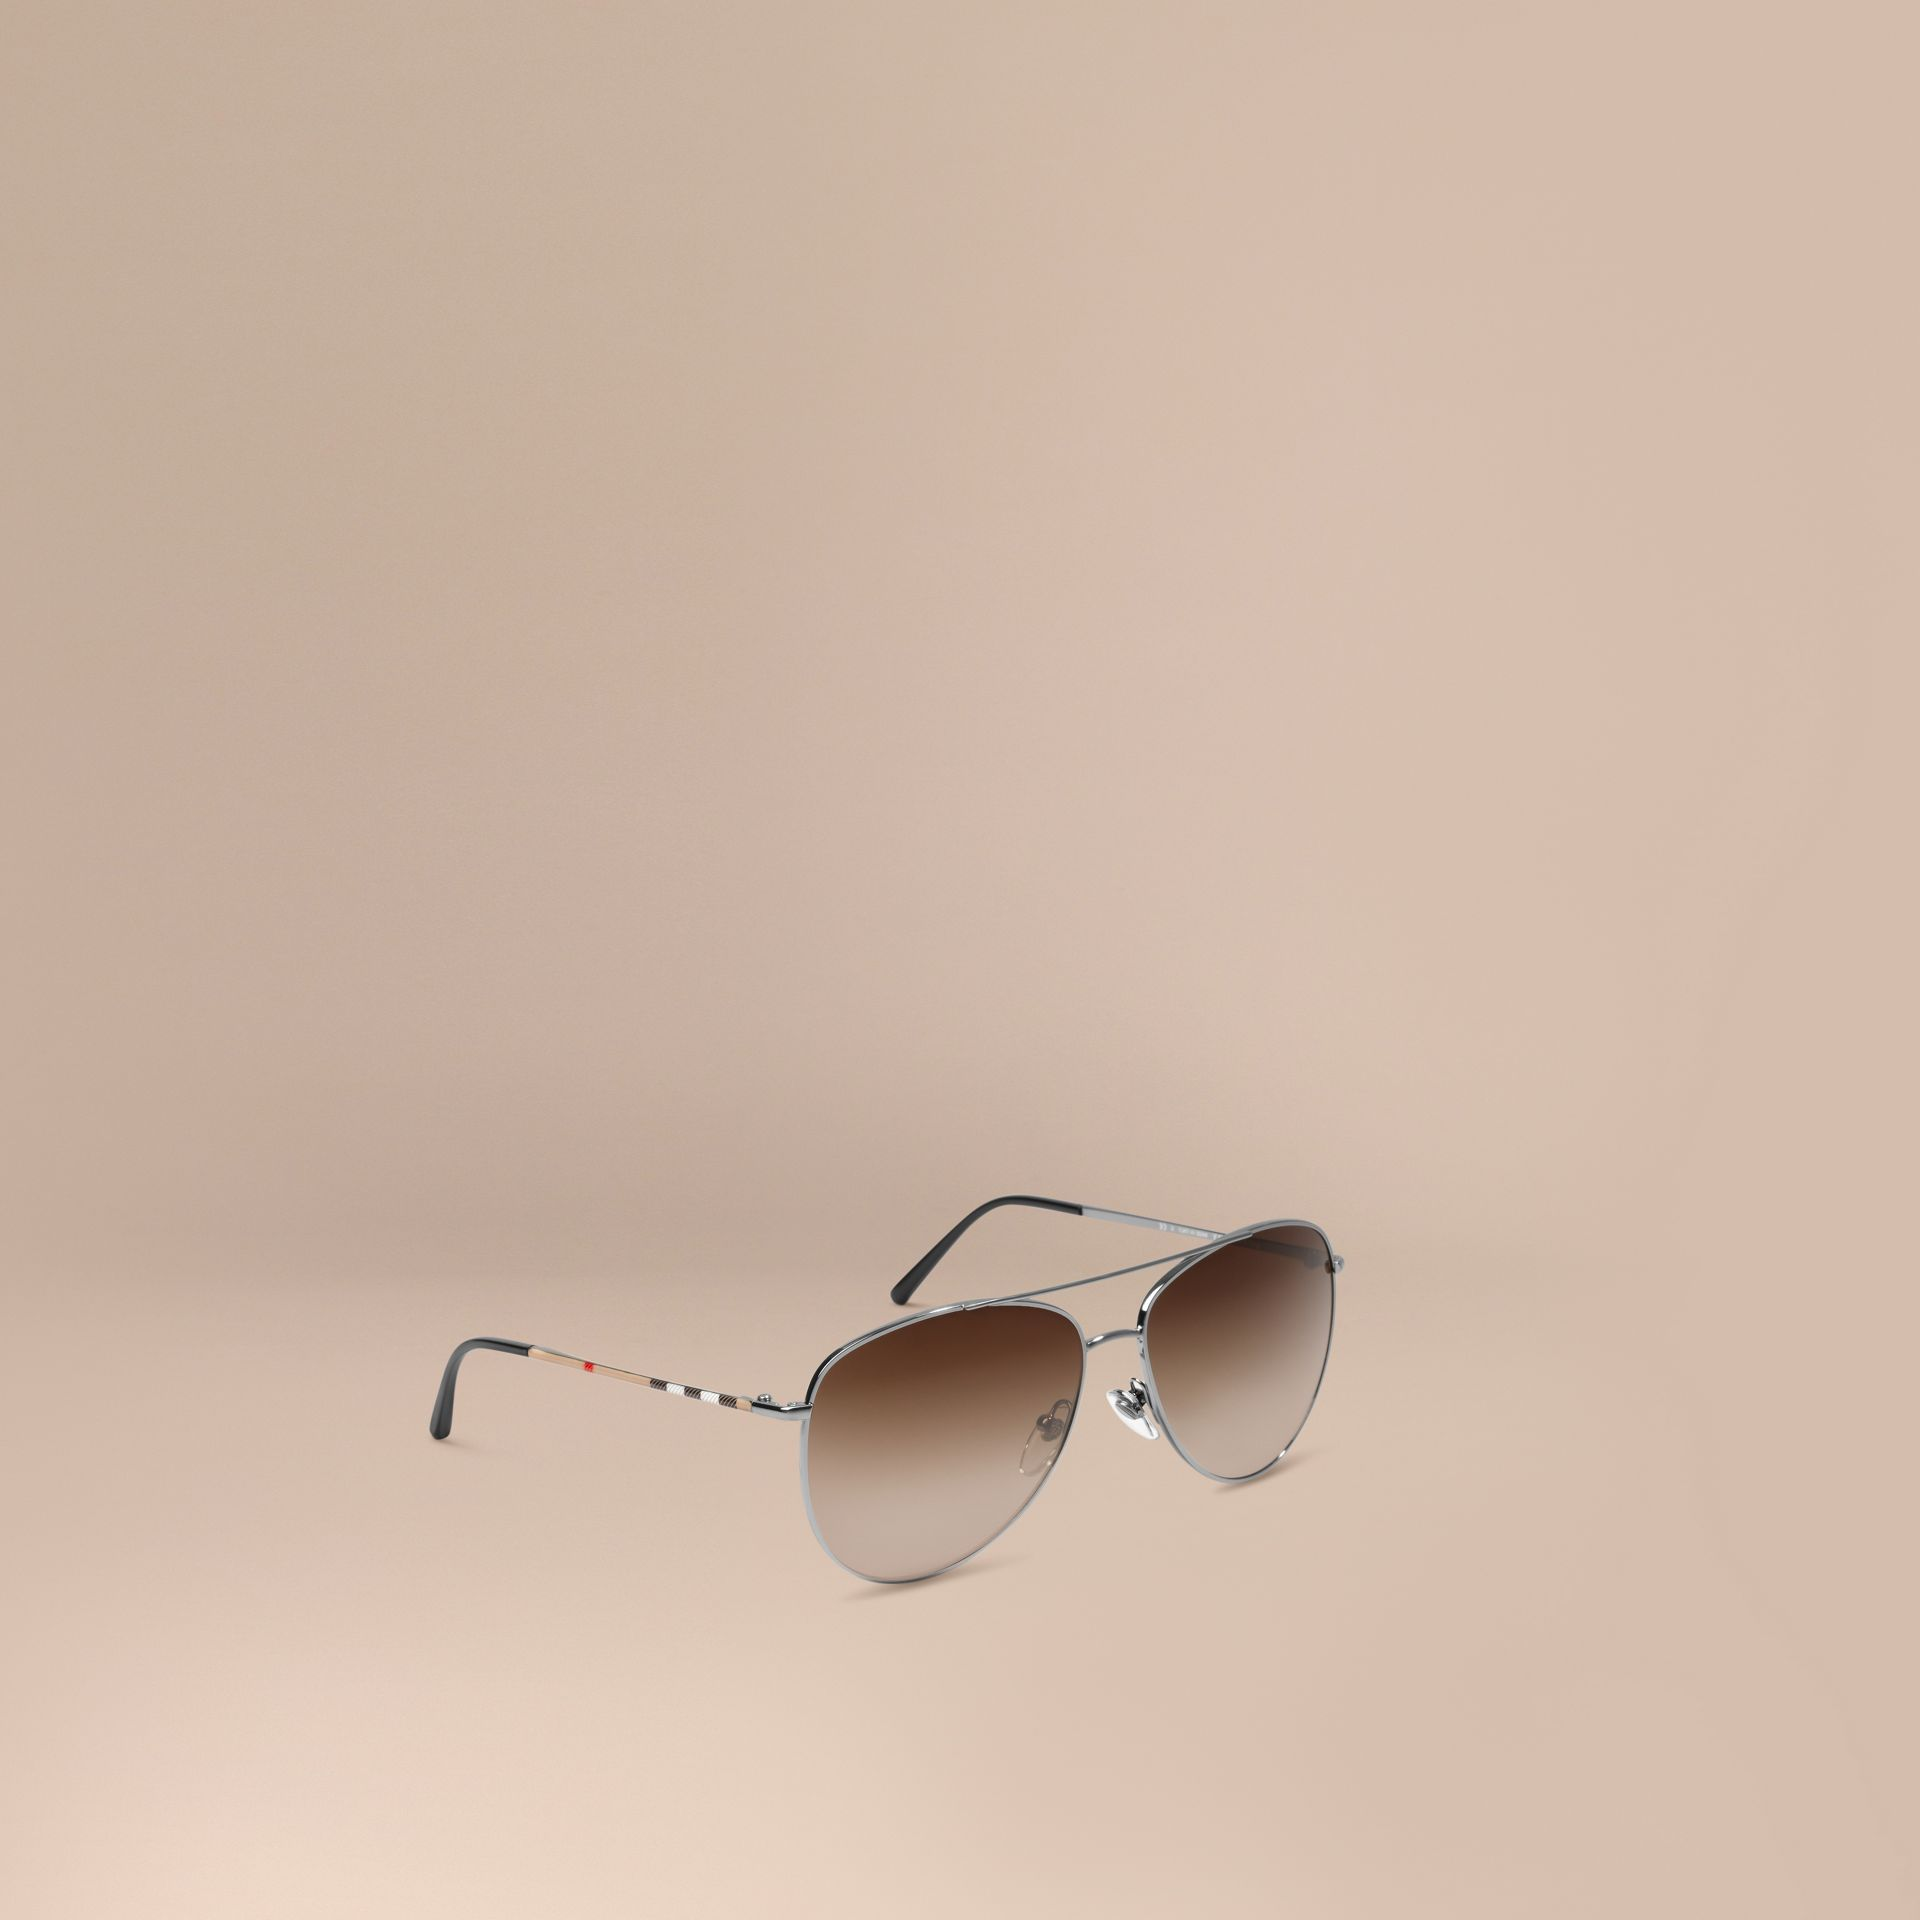 Nickel Check Arm Aviator Sunglasses Nickel - gallery image 1